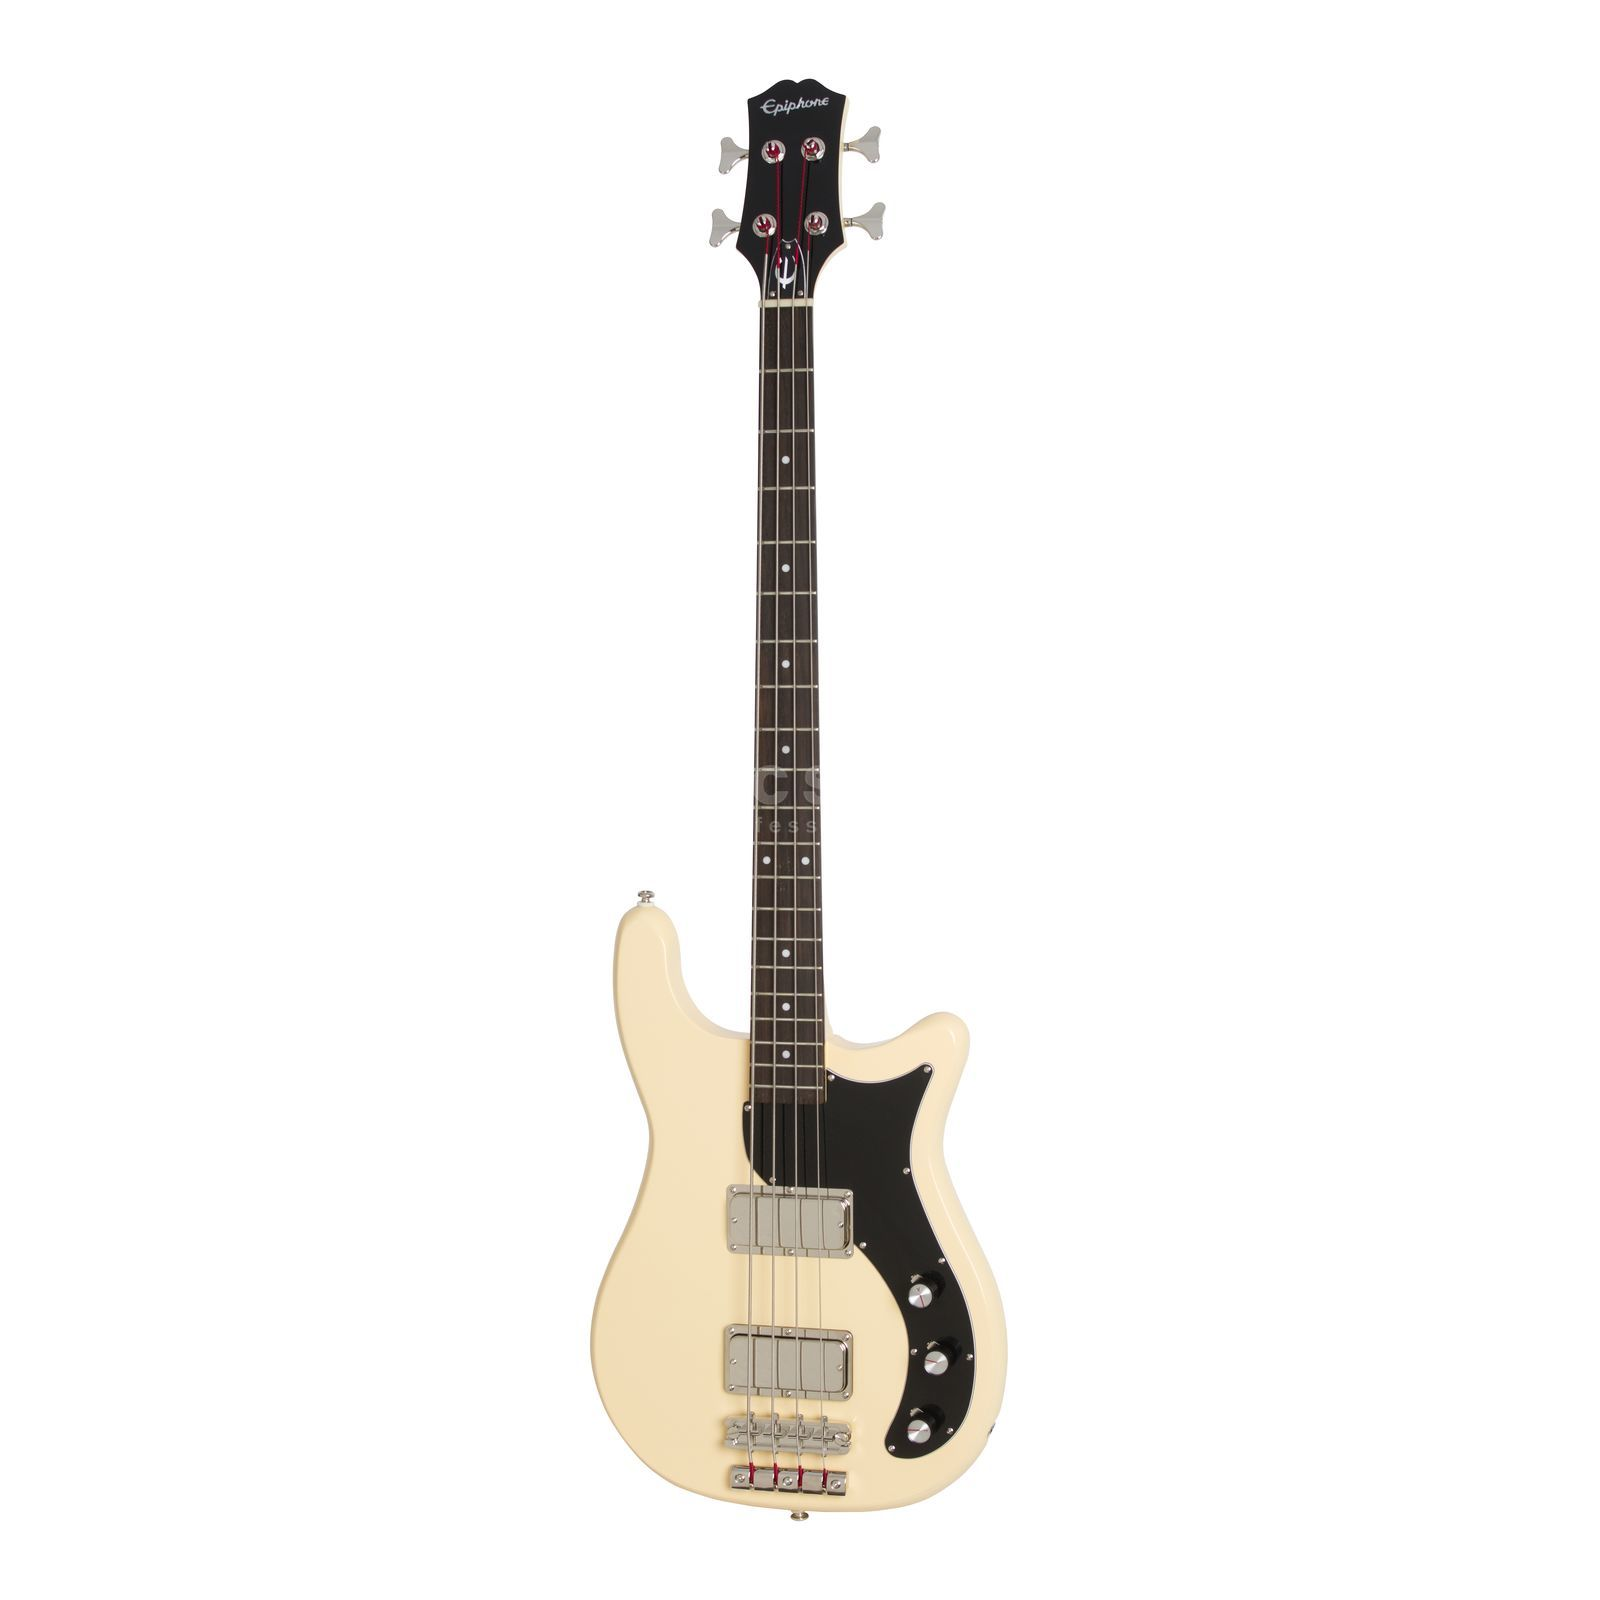 Epiphone Embassy PRO Bass Antique Ivory Productafbeelding